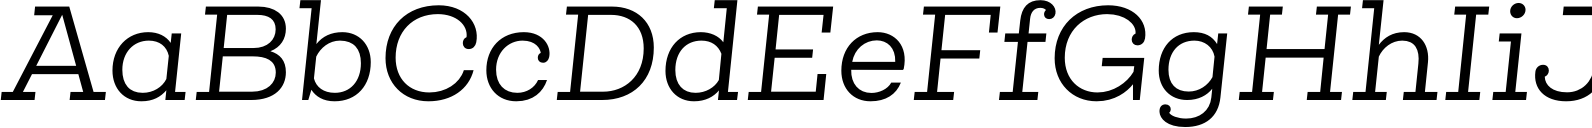 Queulat Regular Italic Font